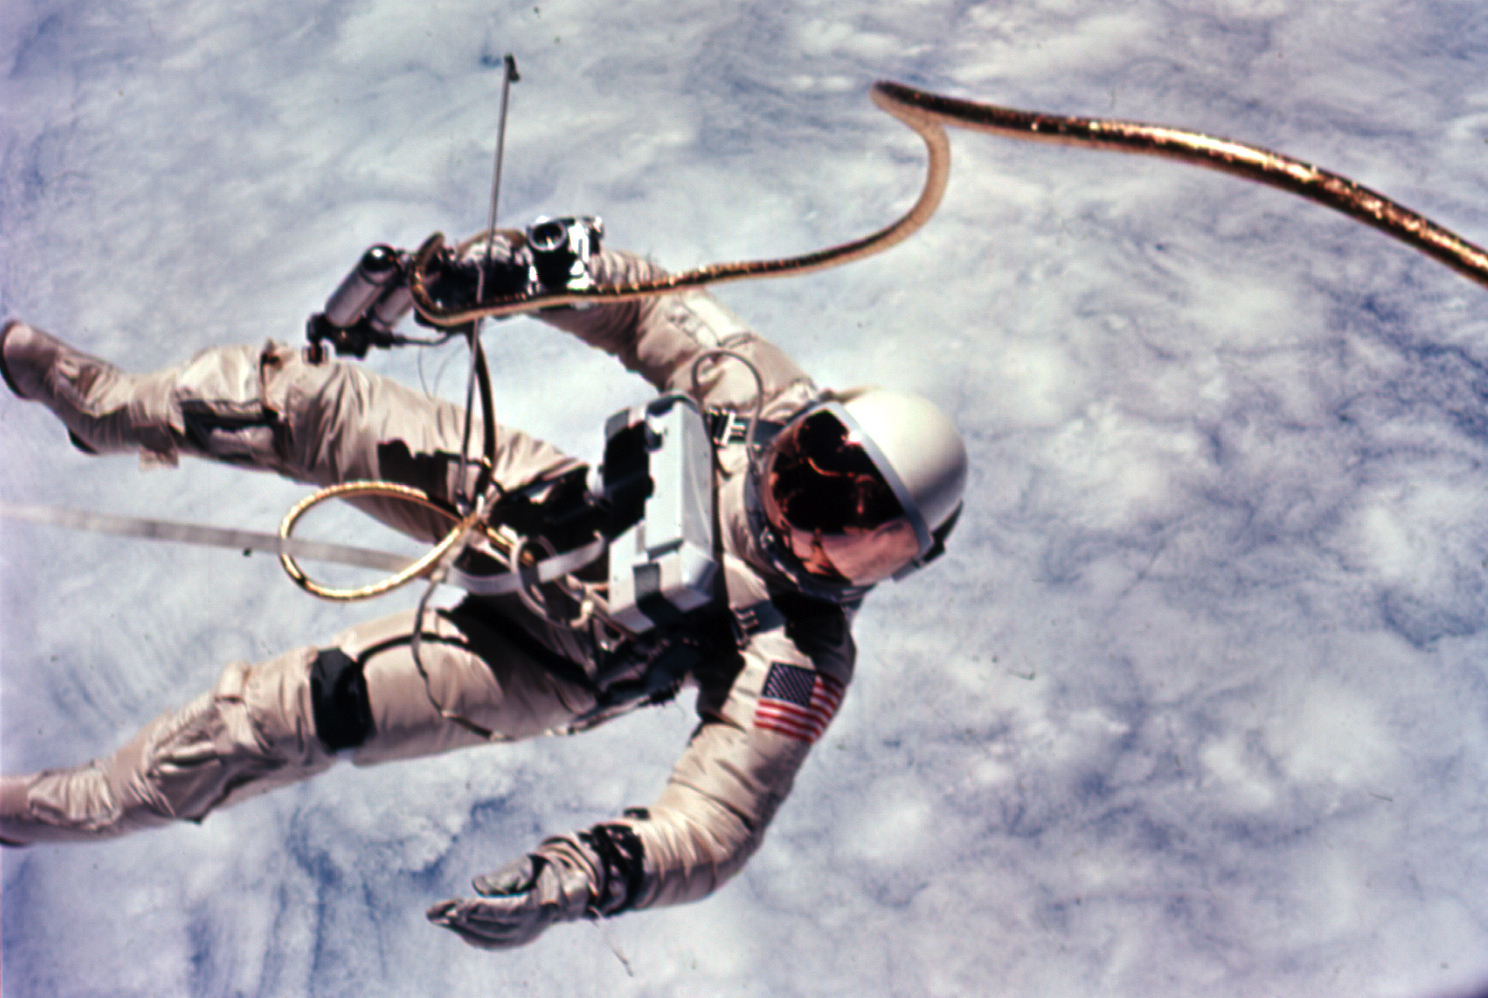 jumping astronaut in space - photo #34